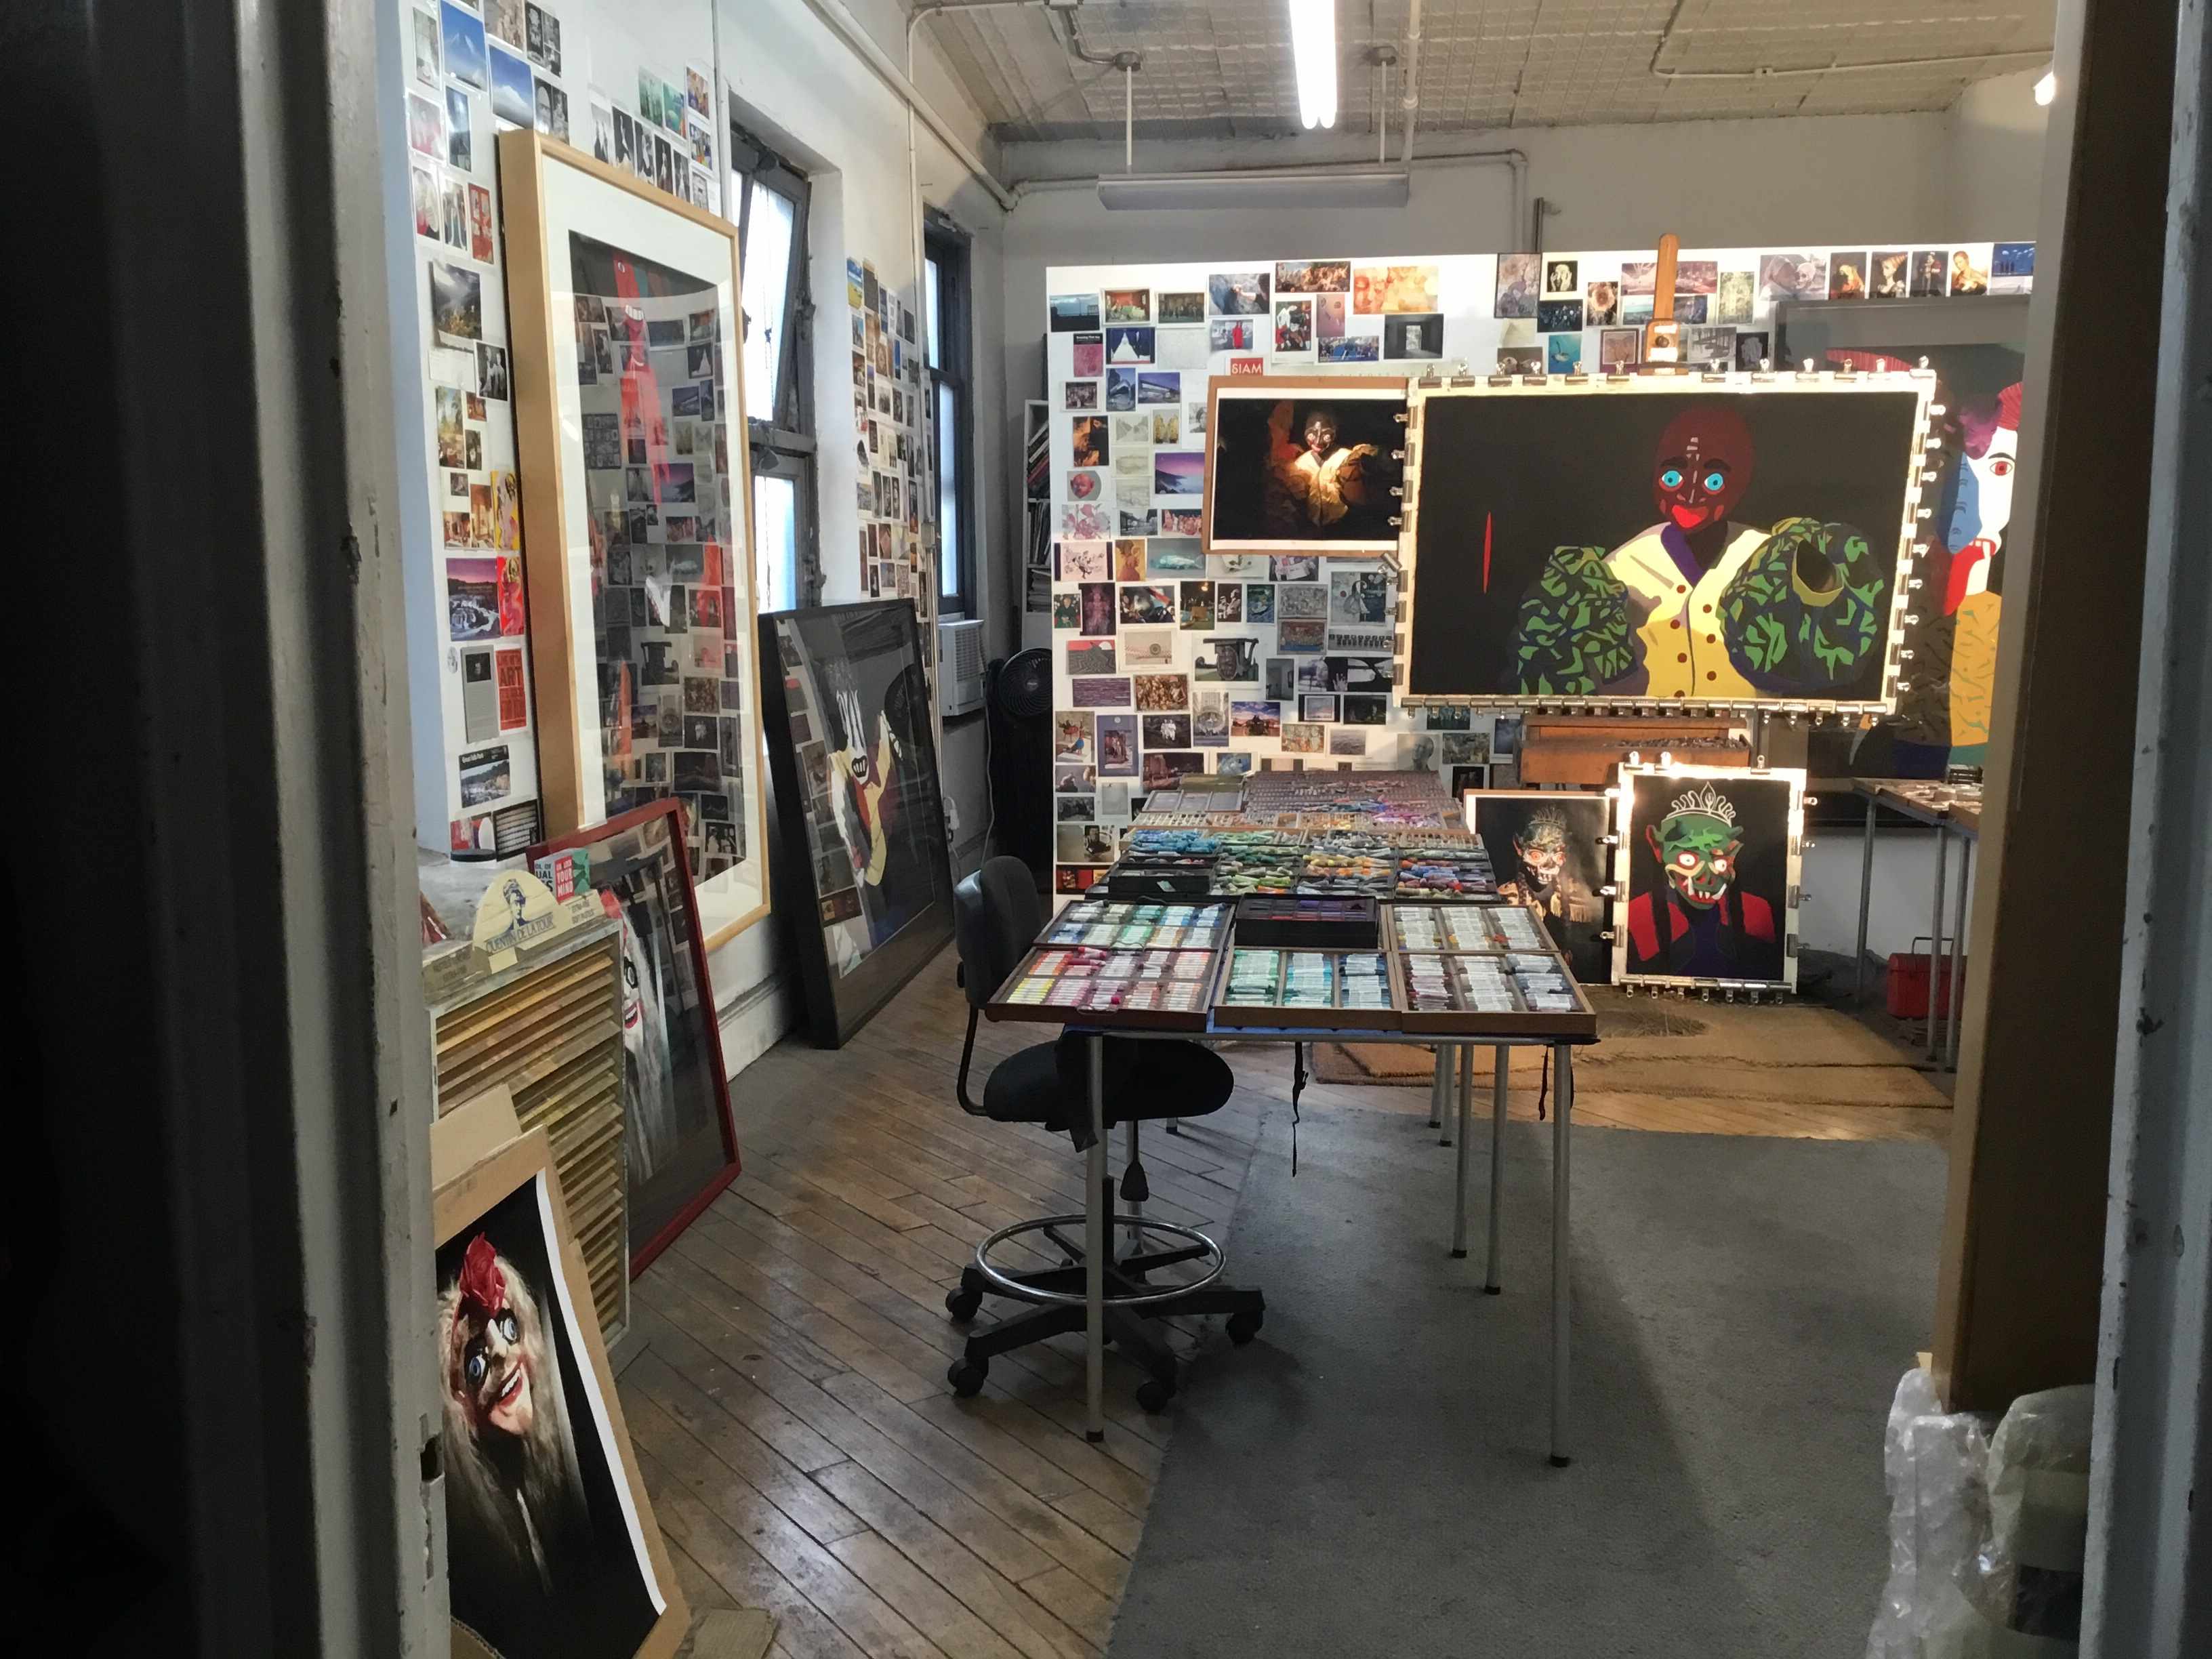 Entering Barbara's studio